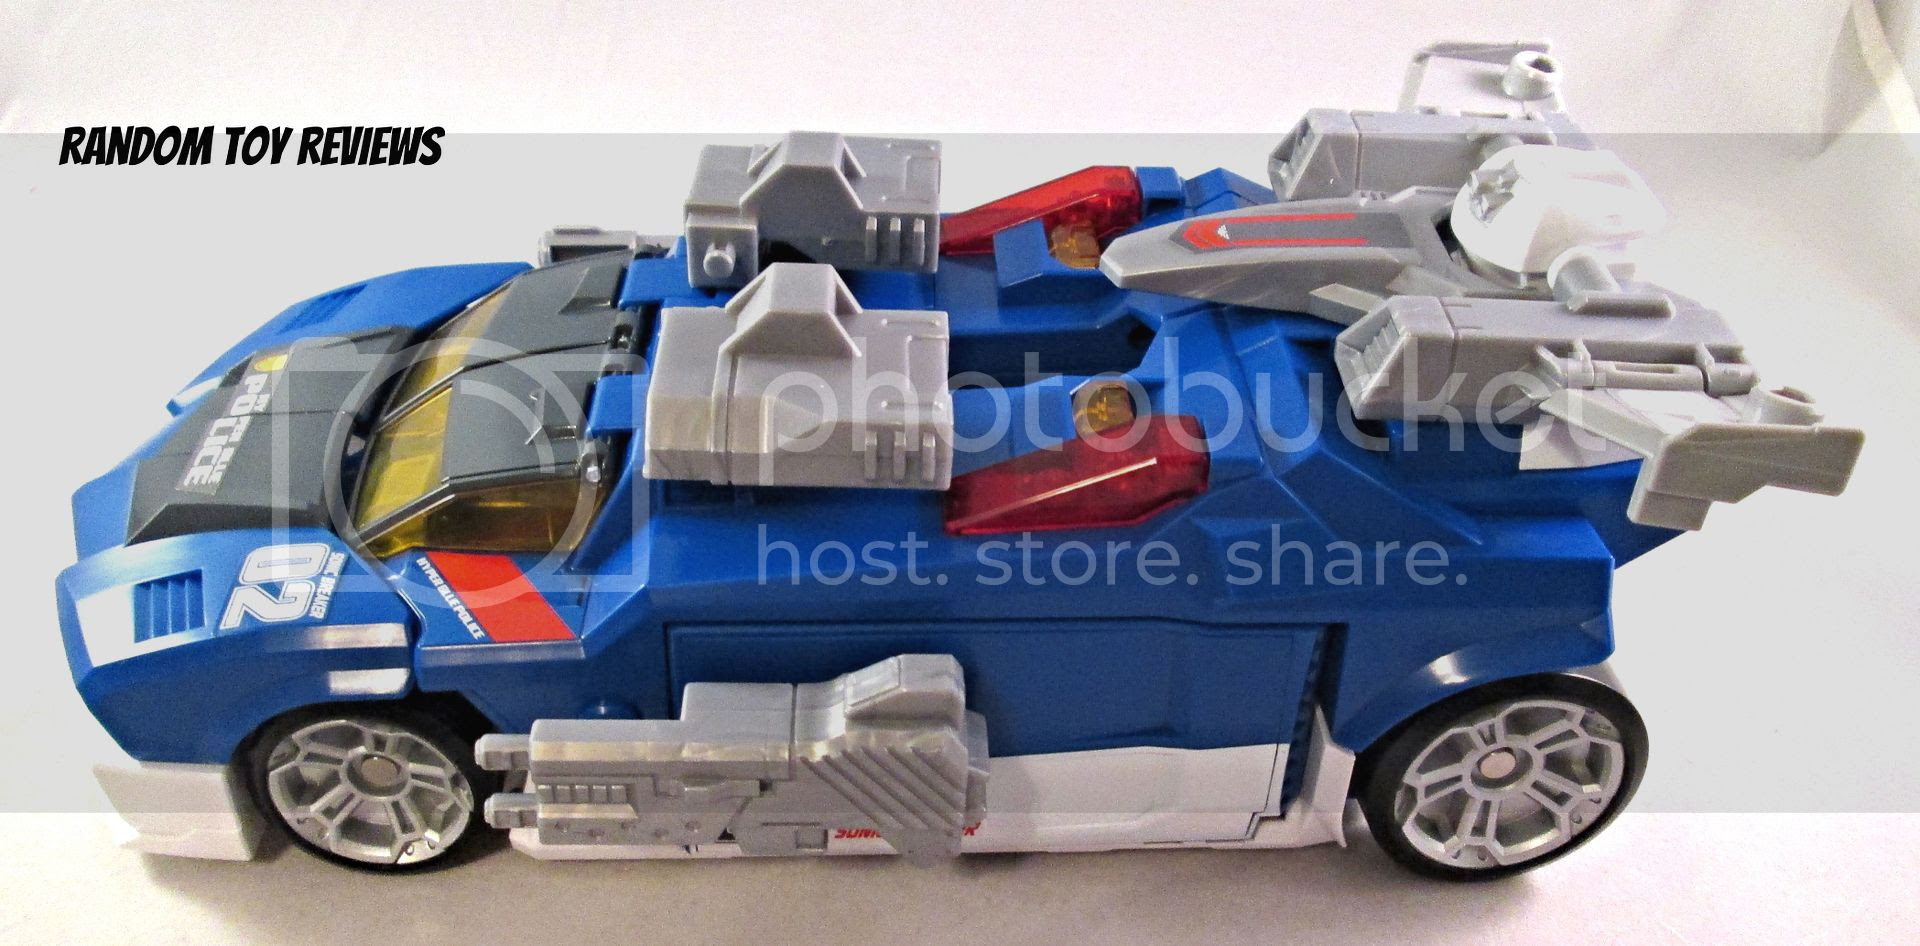 Tomica Hyper Police photo 021_zps75bt9liq.jpg